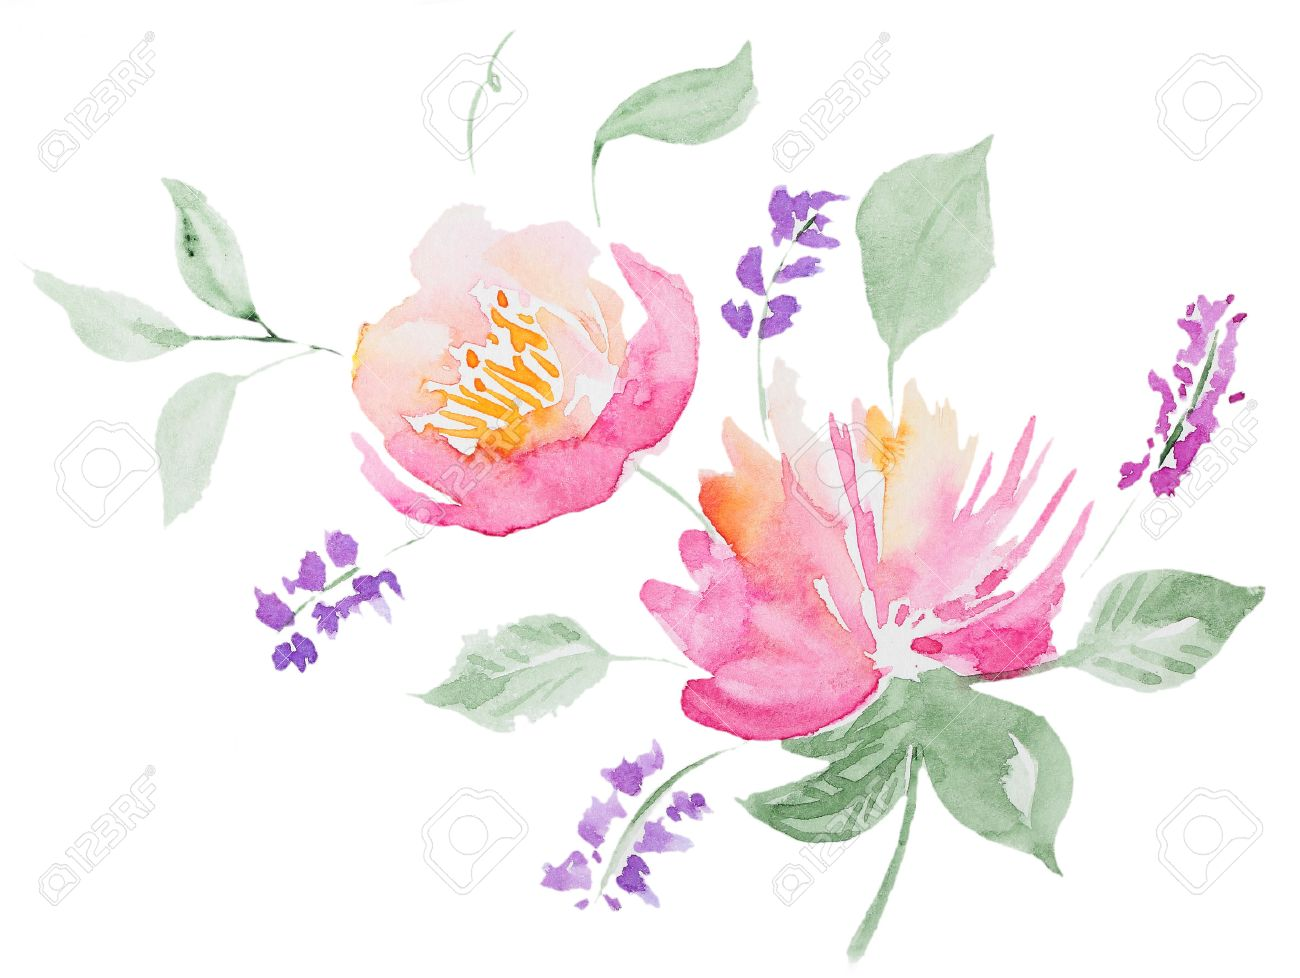 Abstract Watercolor Peonwatercolor Flowers Of Peon On White Background Perfect For Wedding Invitations